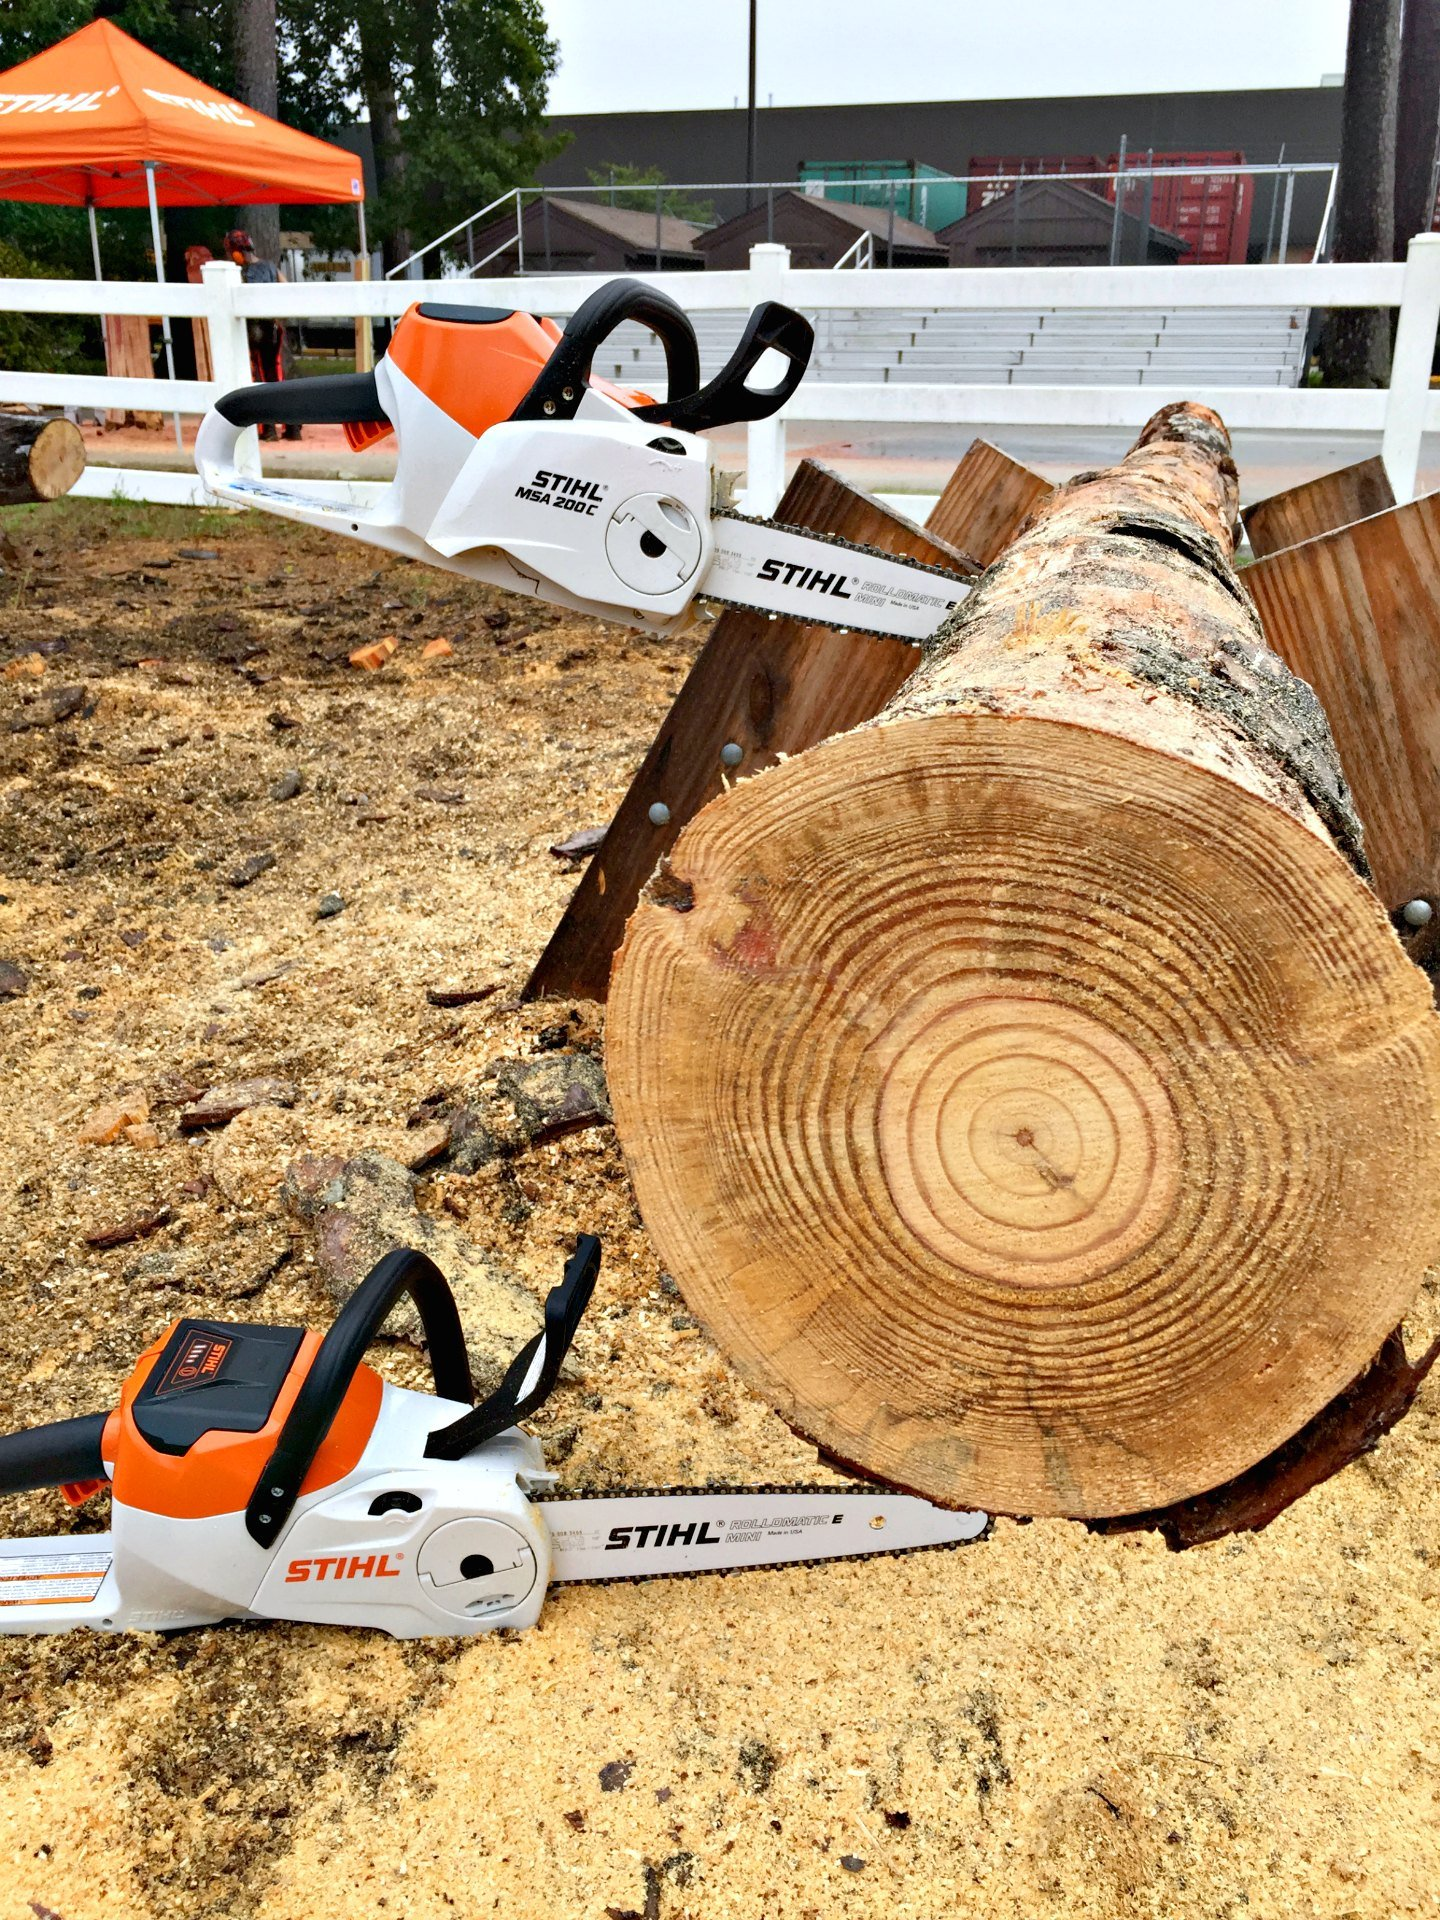 STIHL battery powered chainsaws